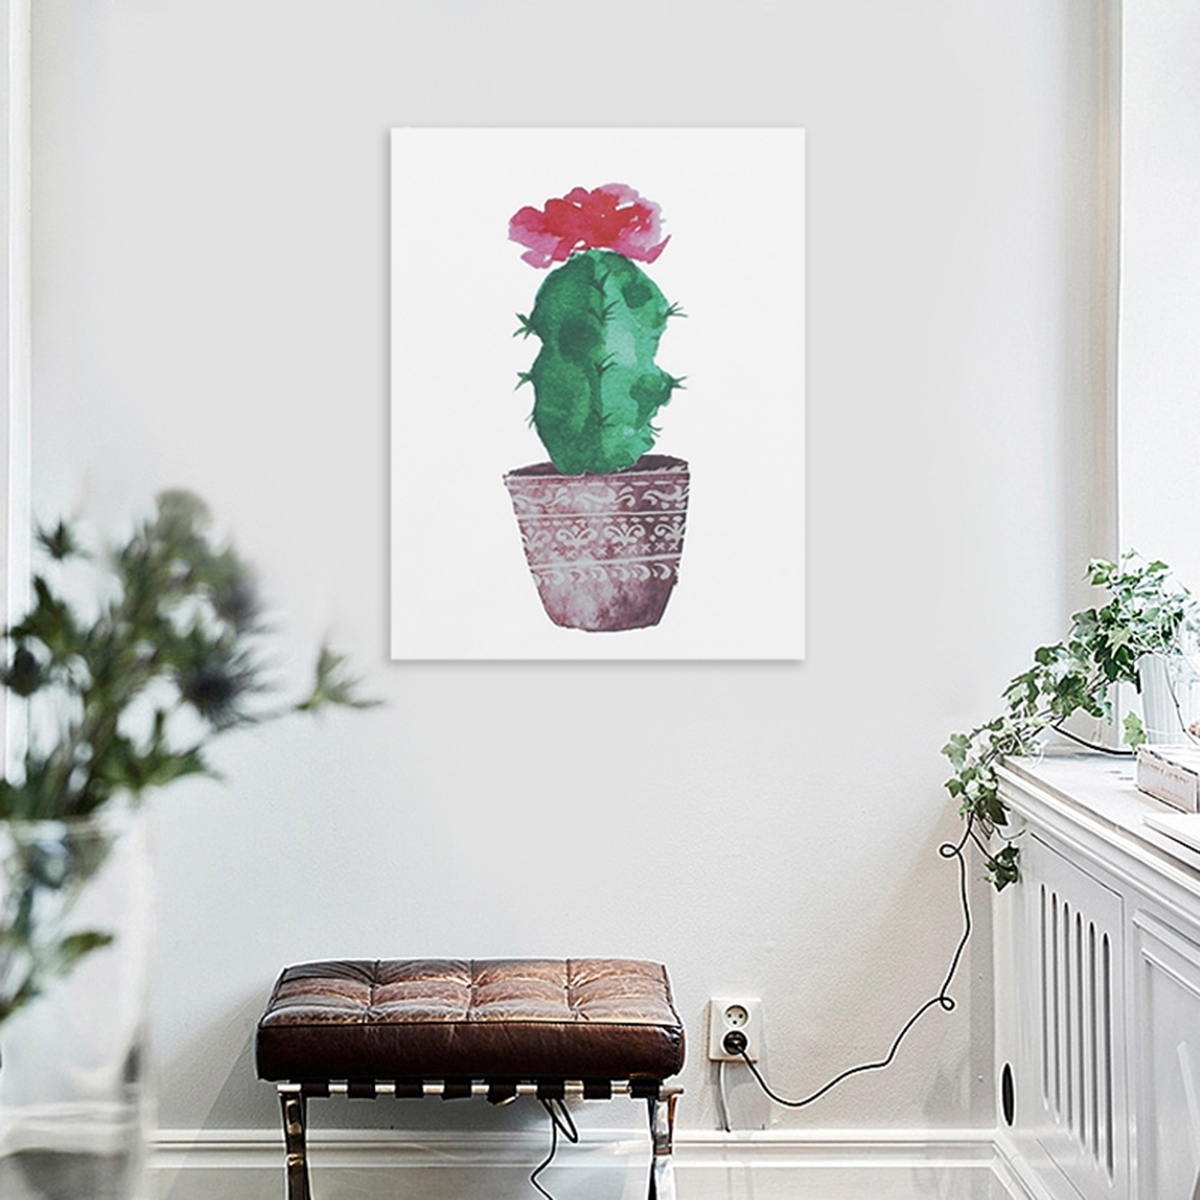 Watercolor Canvas Cactus Painting Print Picture Modern Home Wall Art Intended For Recent Cactus Wall Art (View 4 of 20)